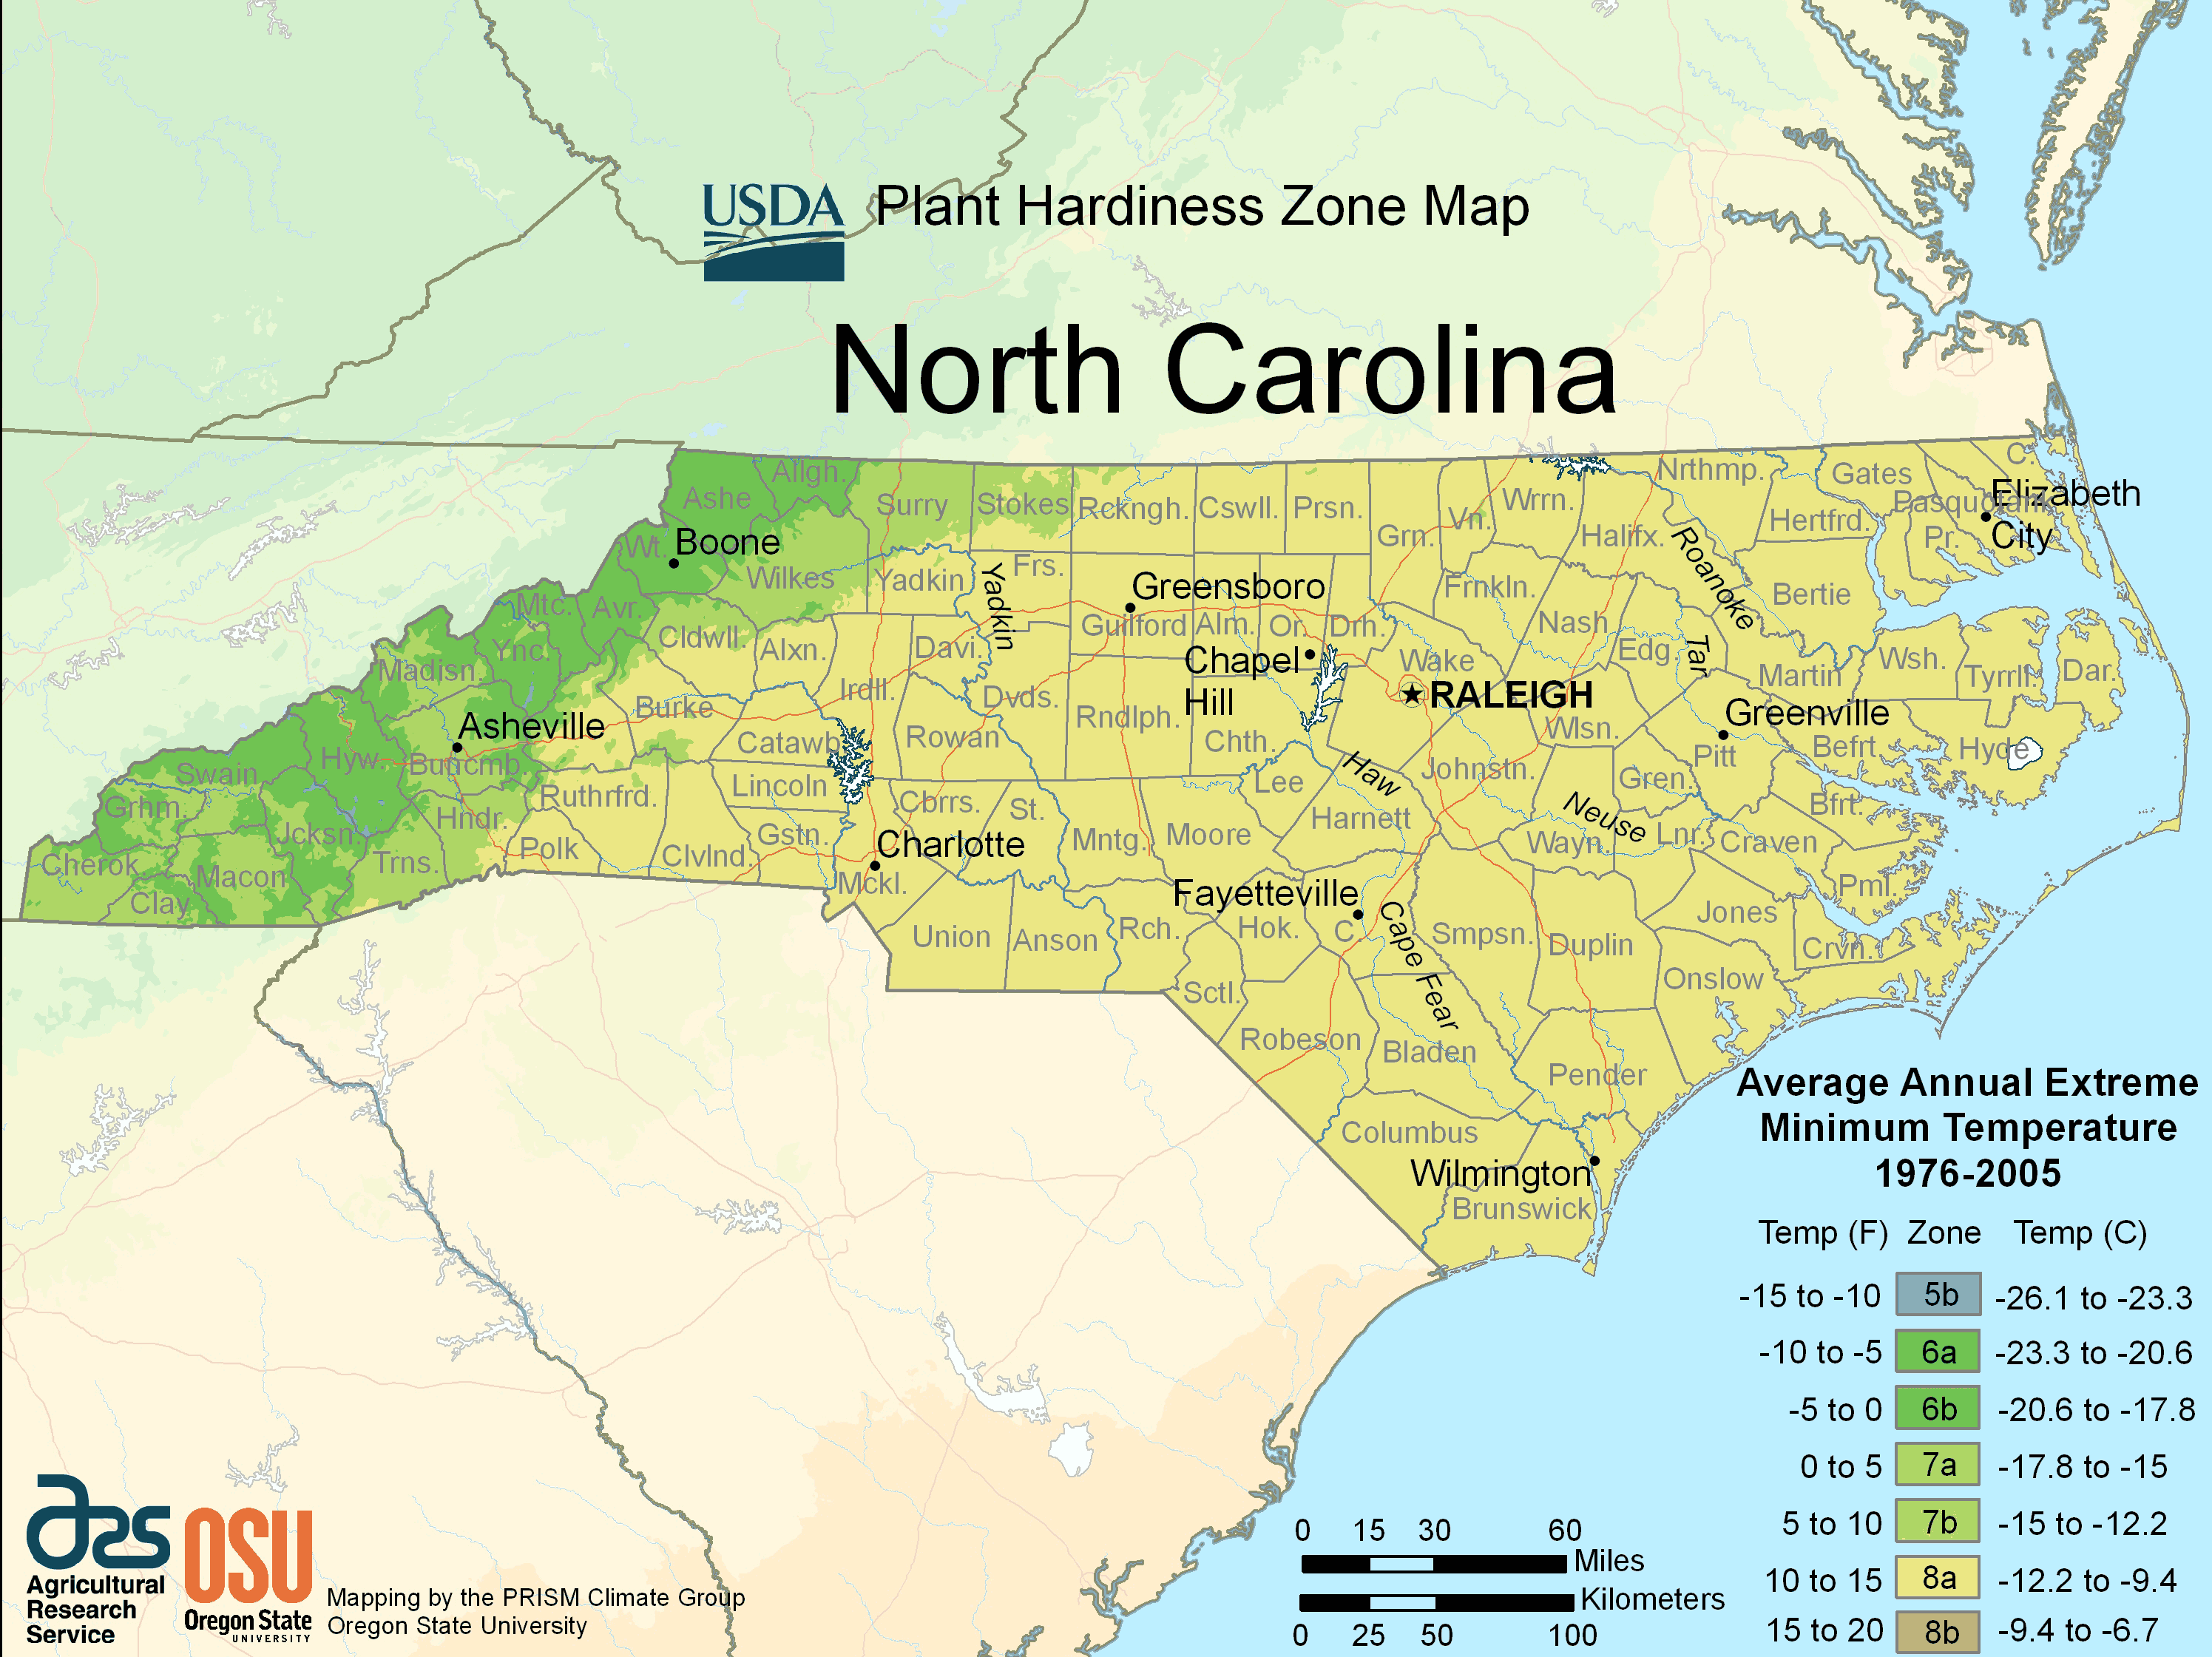 North Carolina Plant Hardiness Zone Map • Mapsof.net